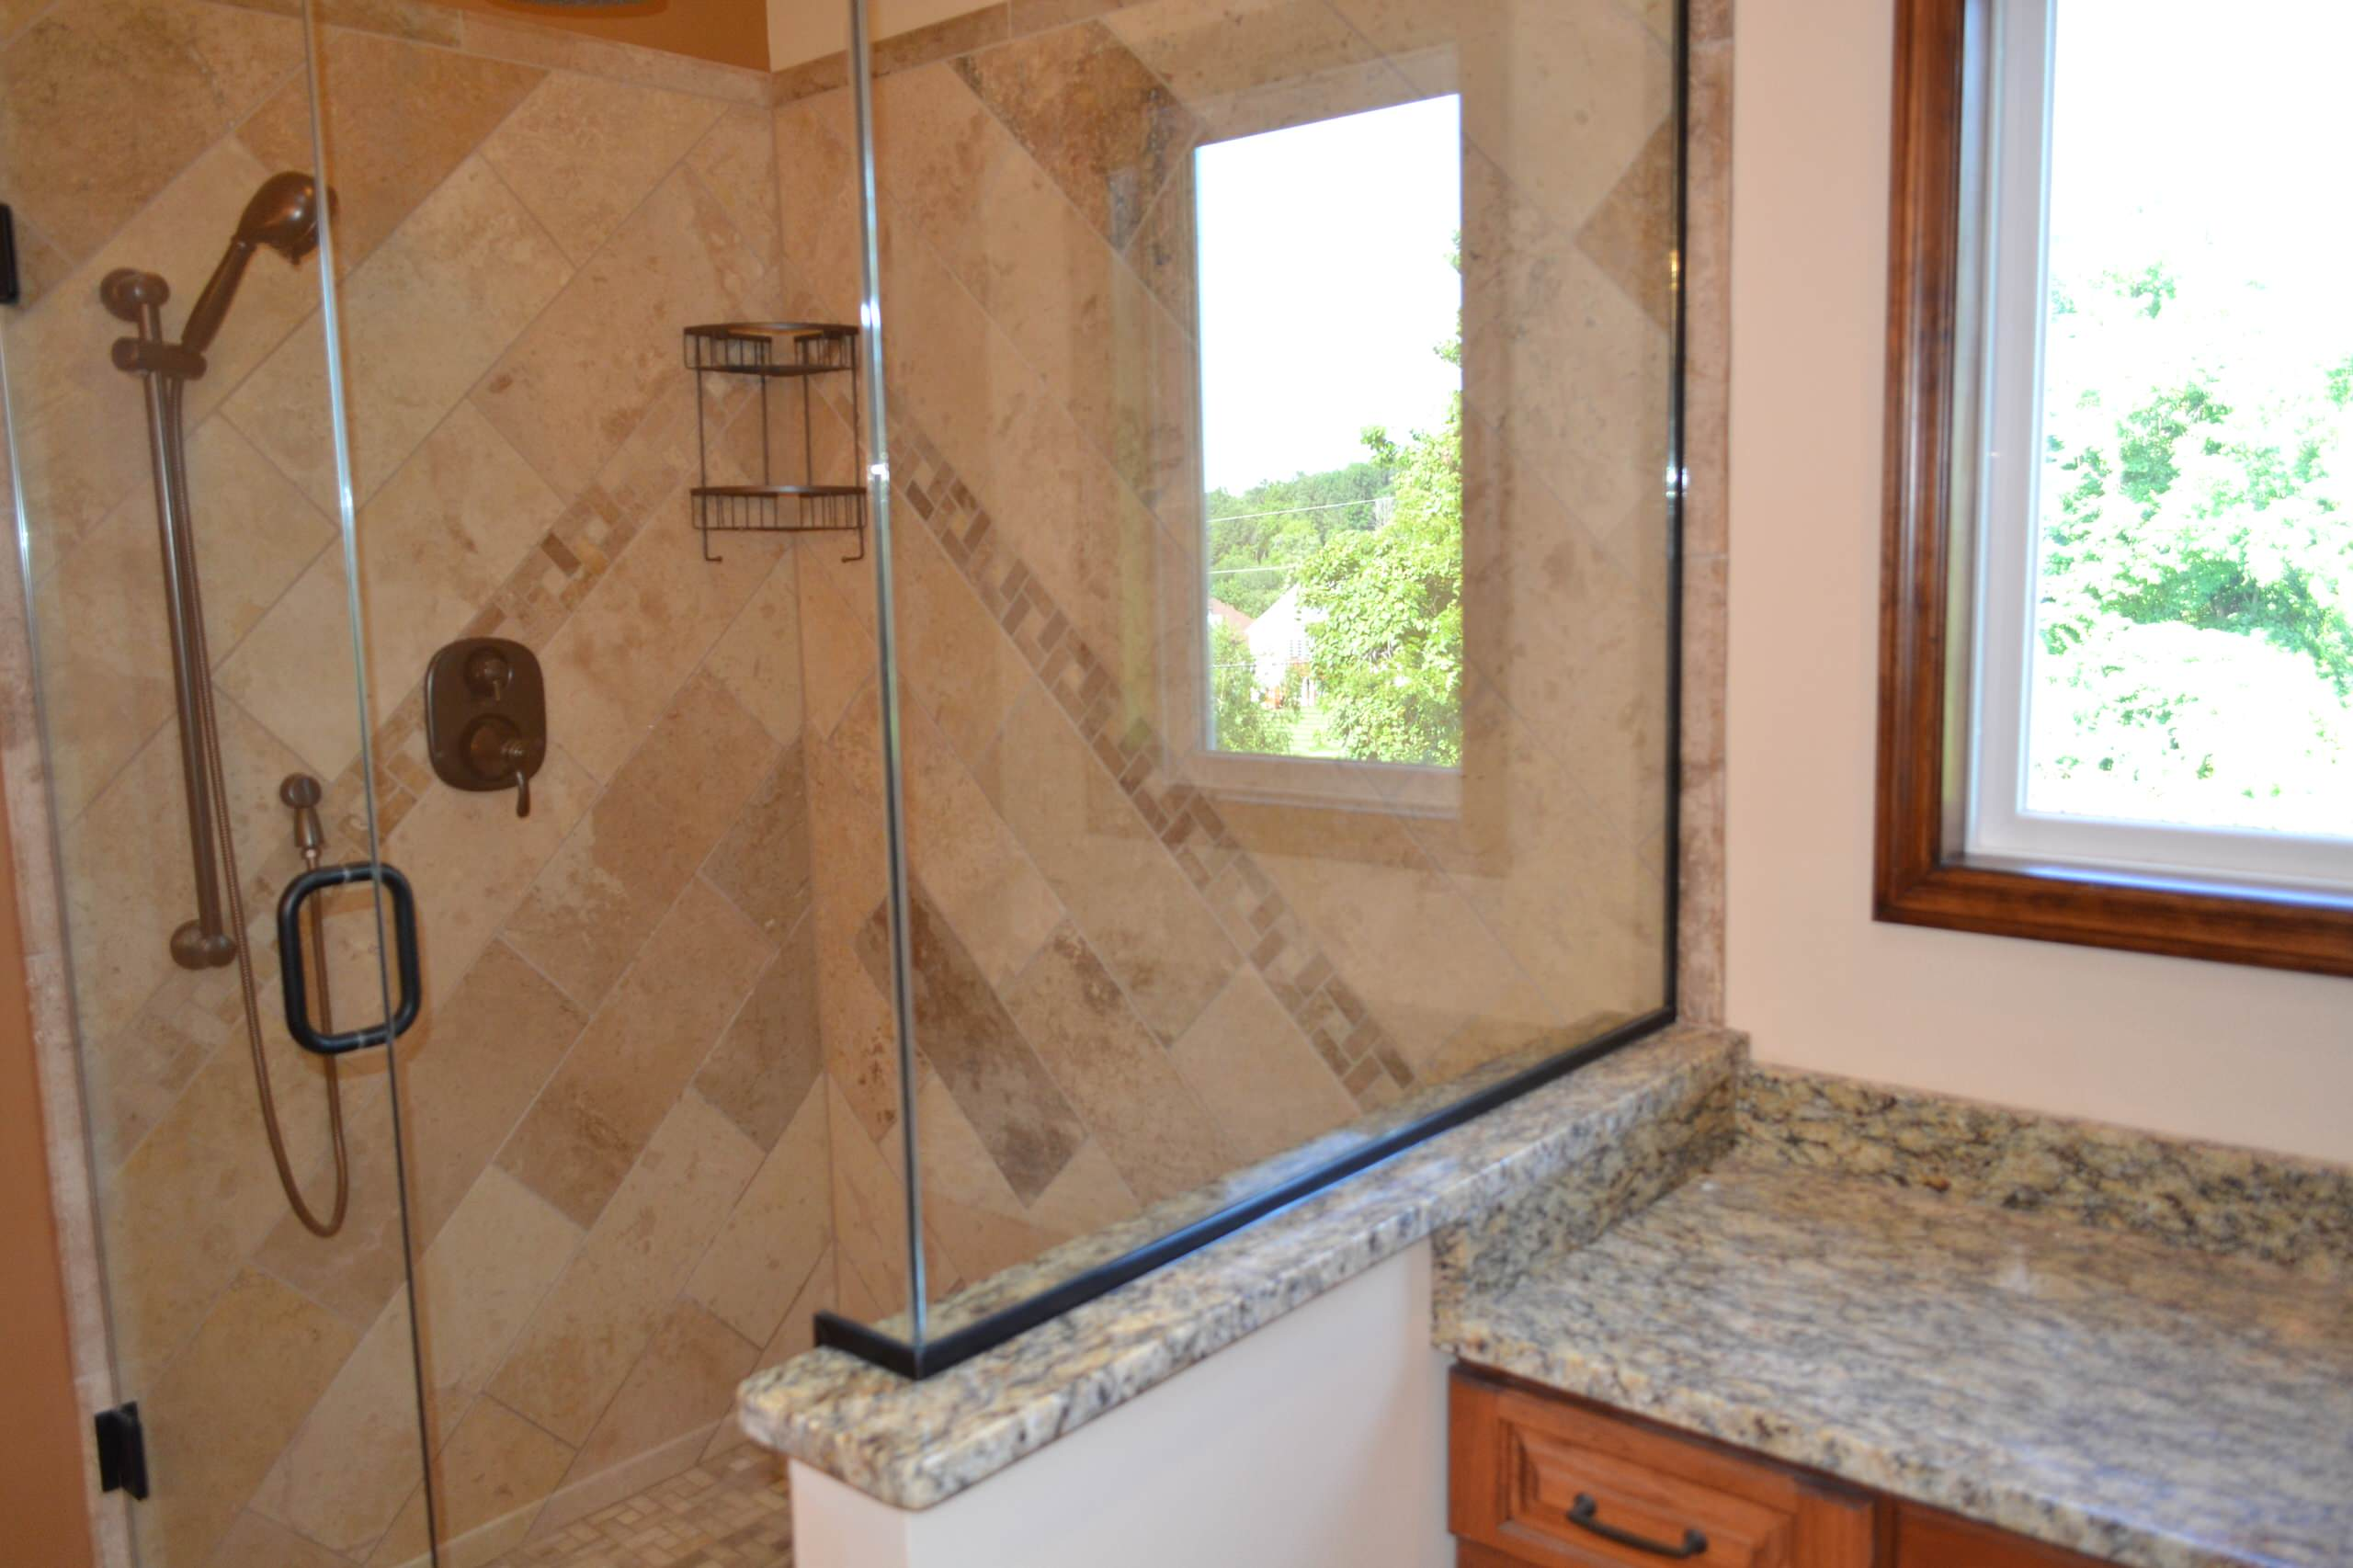 Diagonal travertine tile